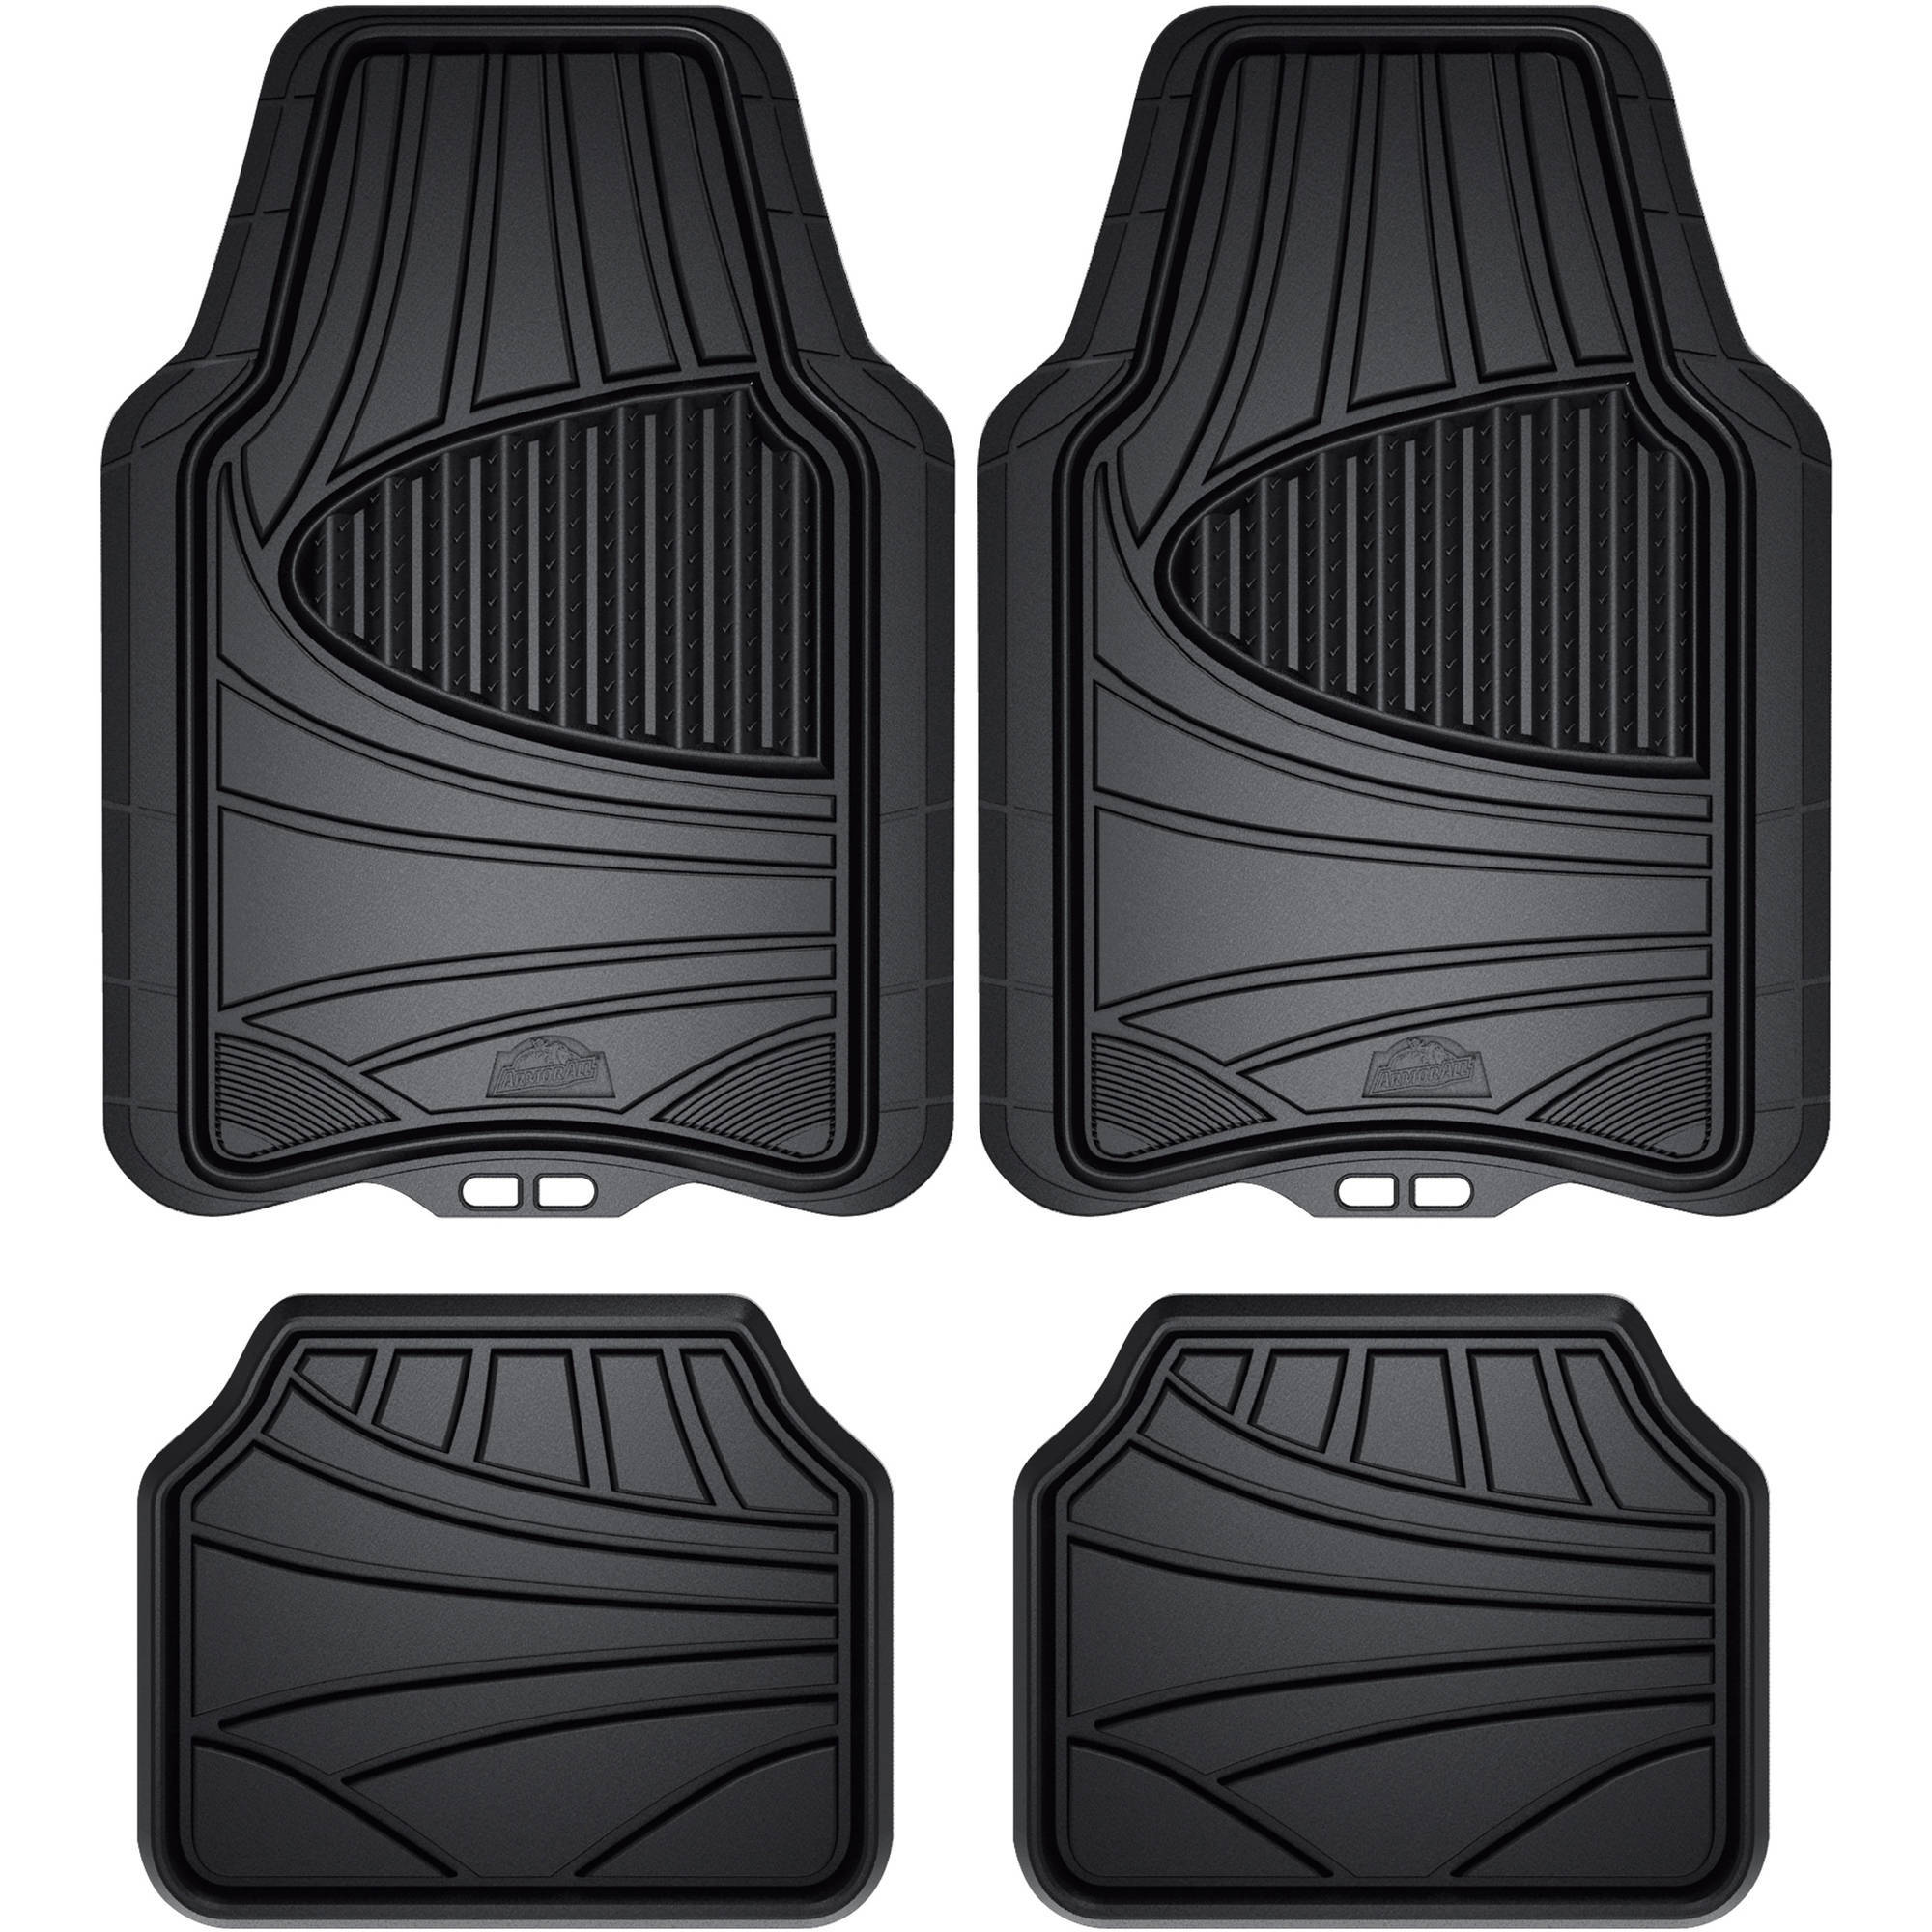 for covers car bestfh floor green black suv gray mat rakuten auto product seat mats rubber with shop